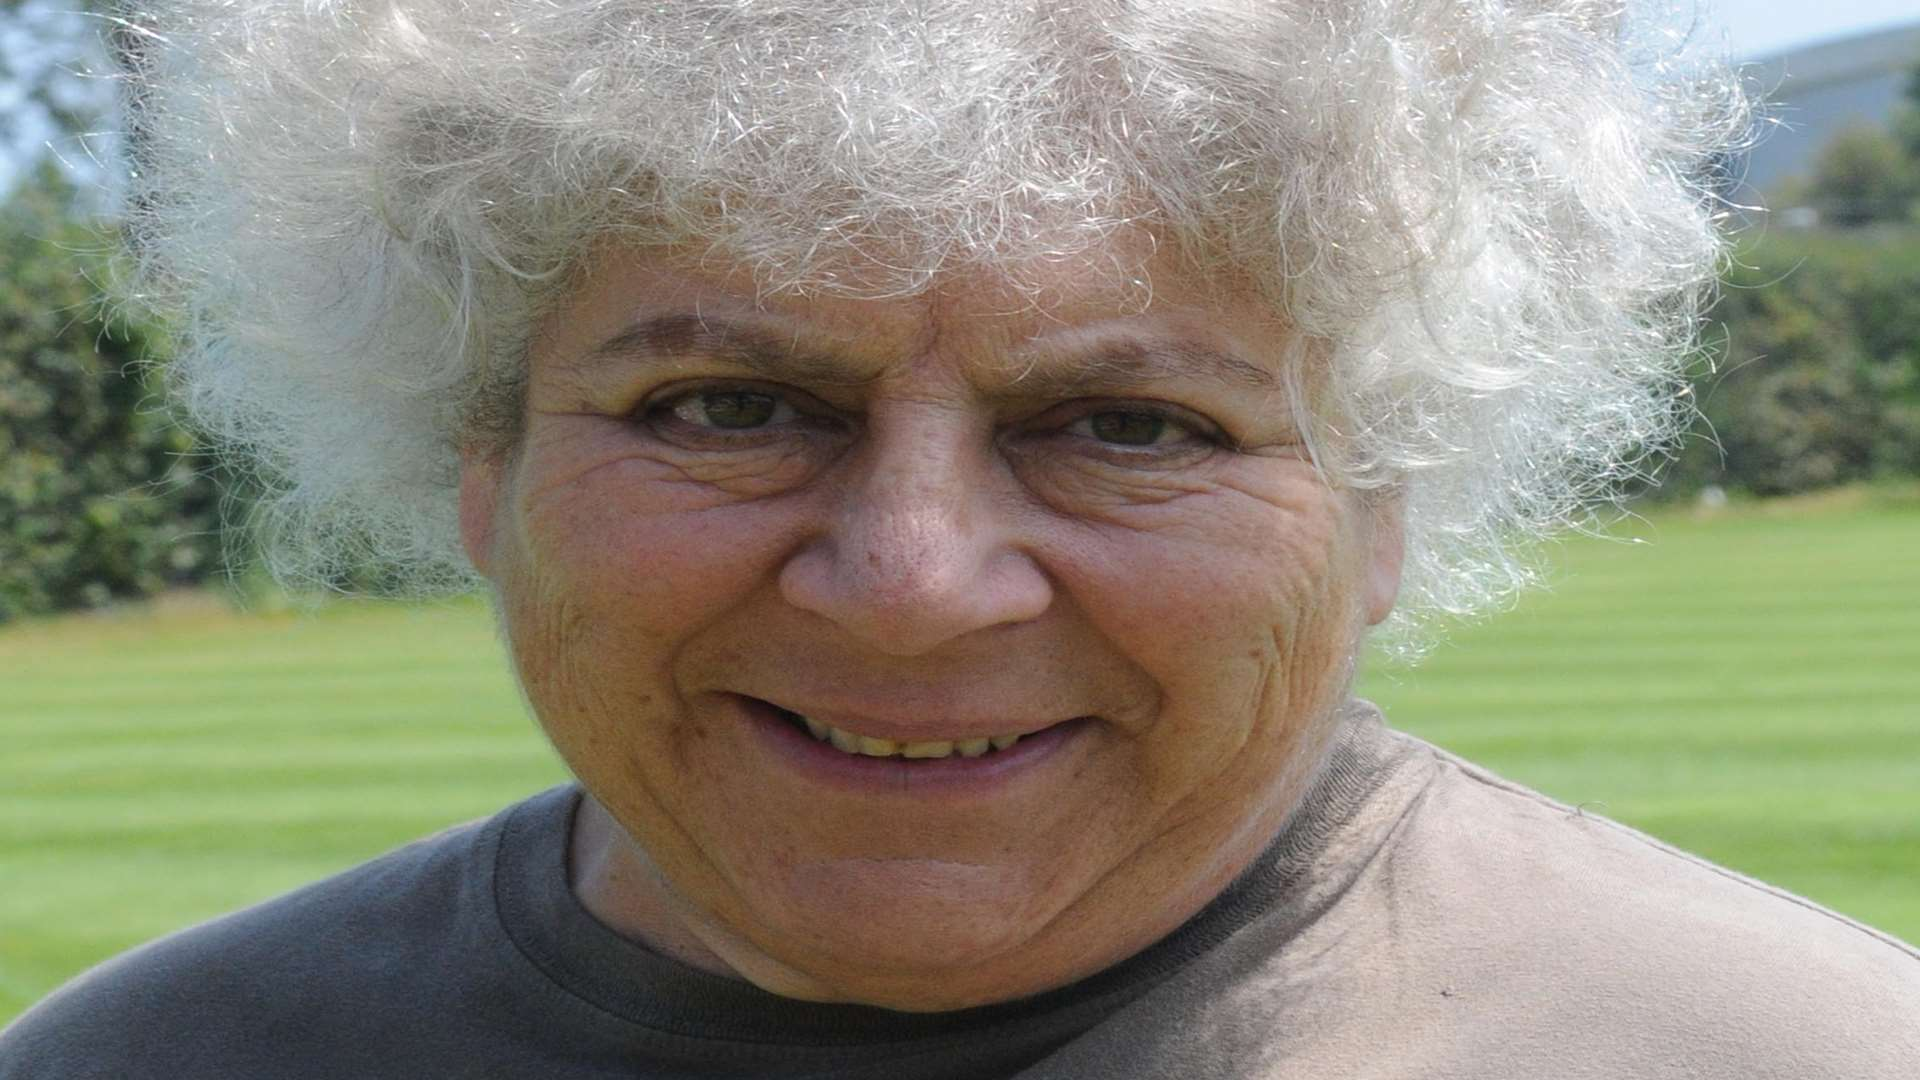 Miriam Margolyes who has a home in St Margaret's Bay wrote an impassioned letter to Dover Harbour Board about the planned dredging of agrigate from the Goodwin Sands